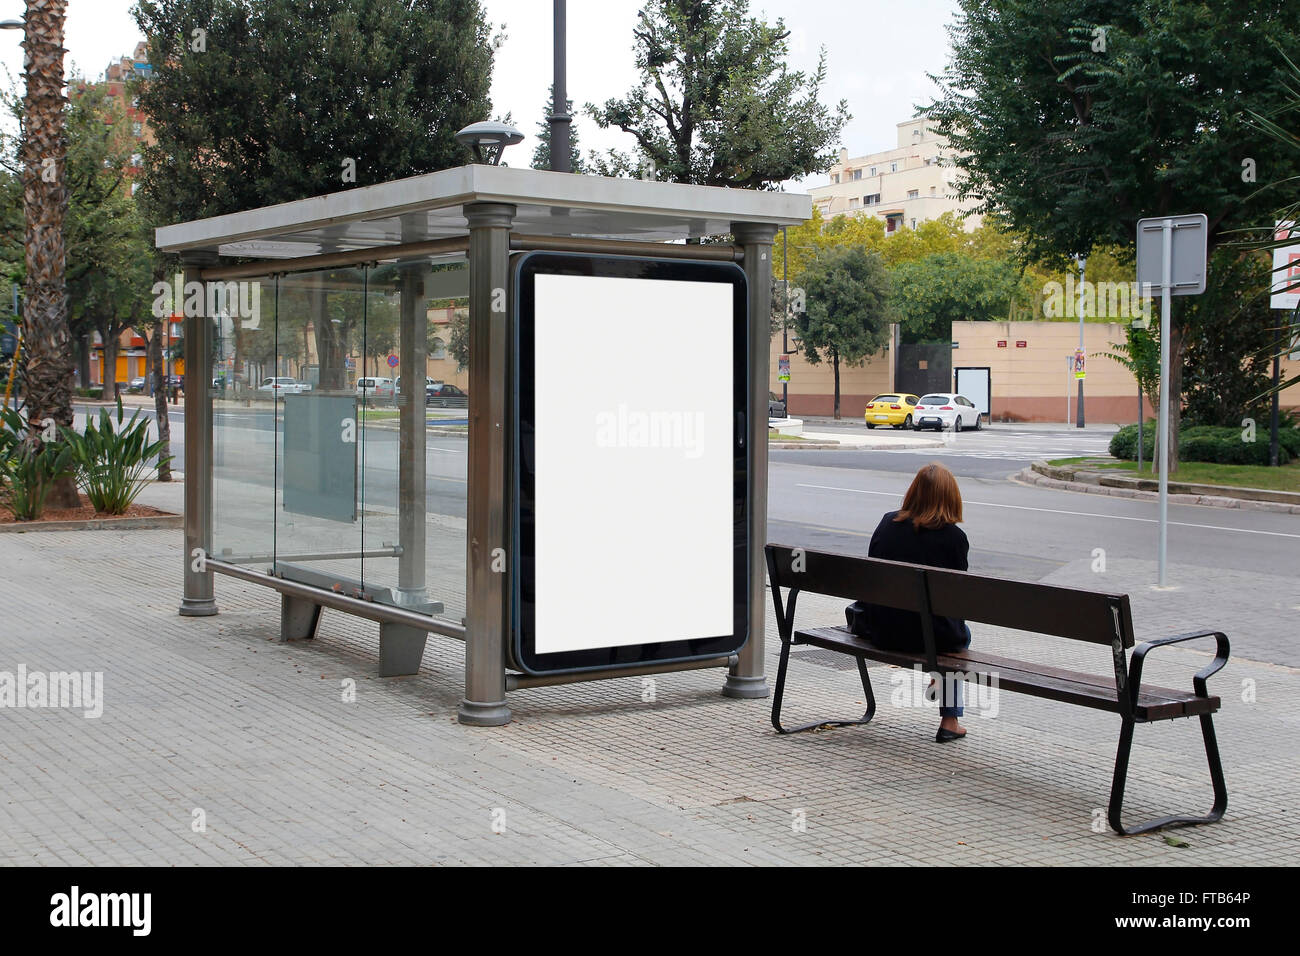 Blank billboard in a bus stop, for advertisement at the street - Stock Image